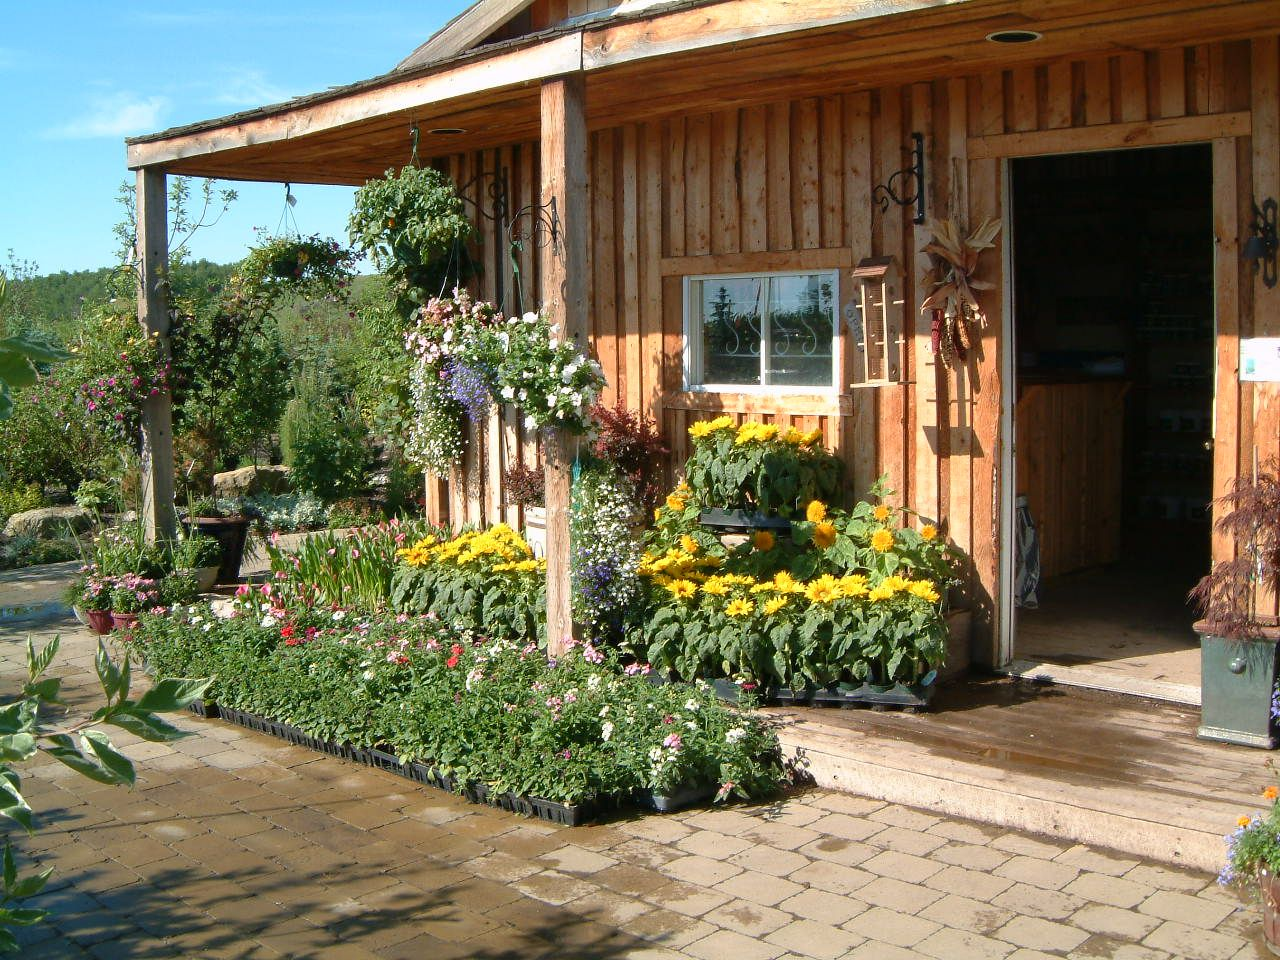 2001 Countryside Garden Centre S Office And Retail 640 x 480